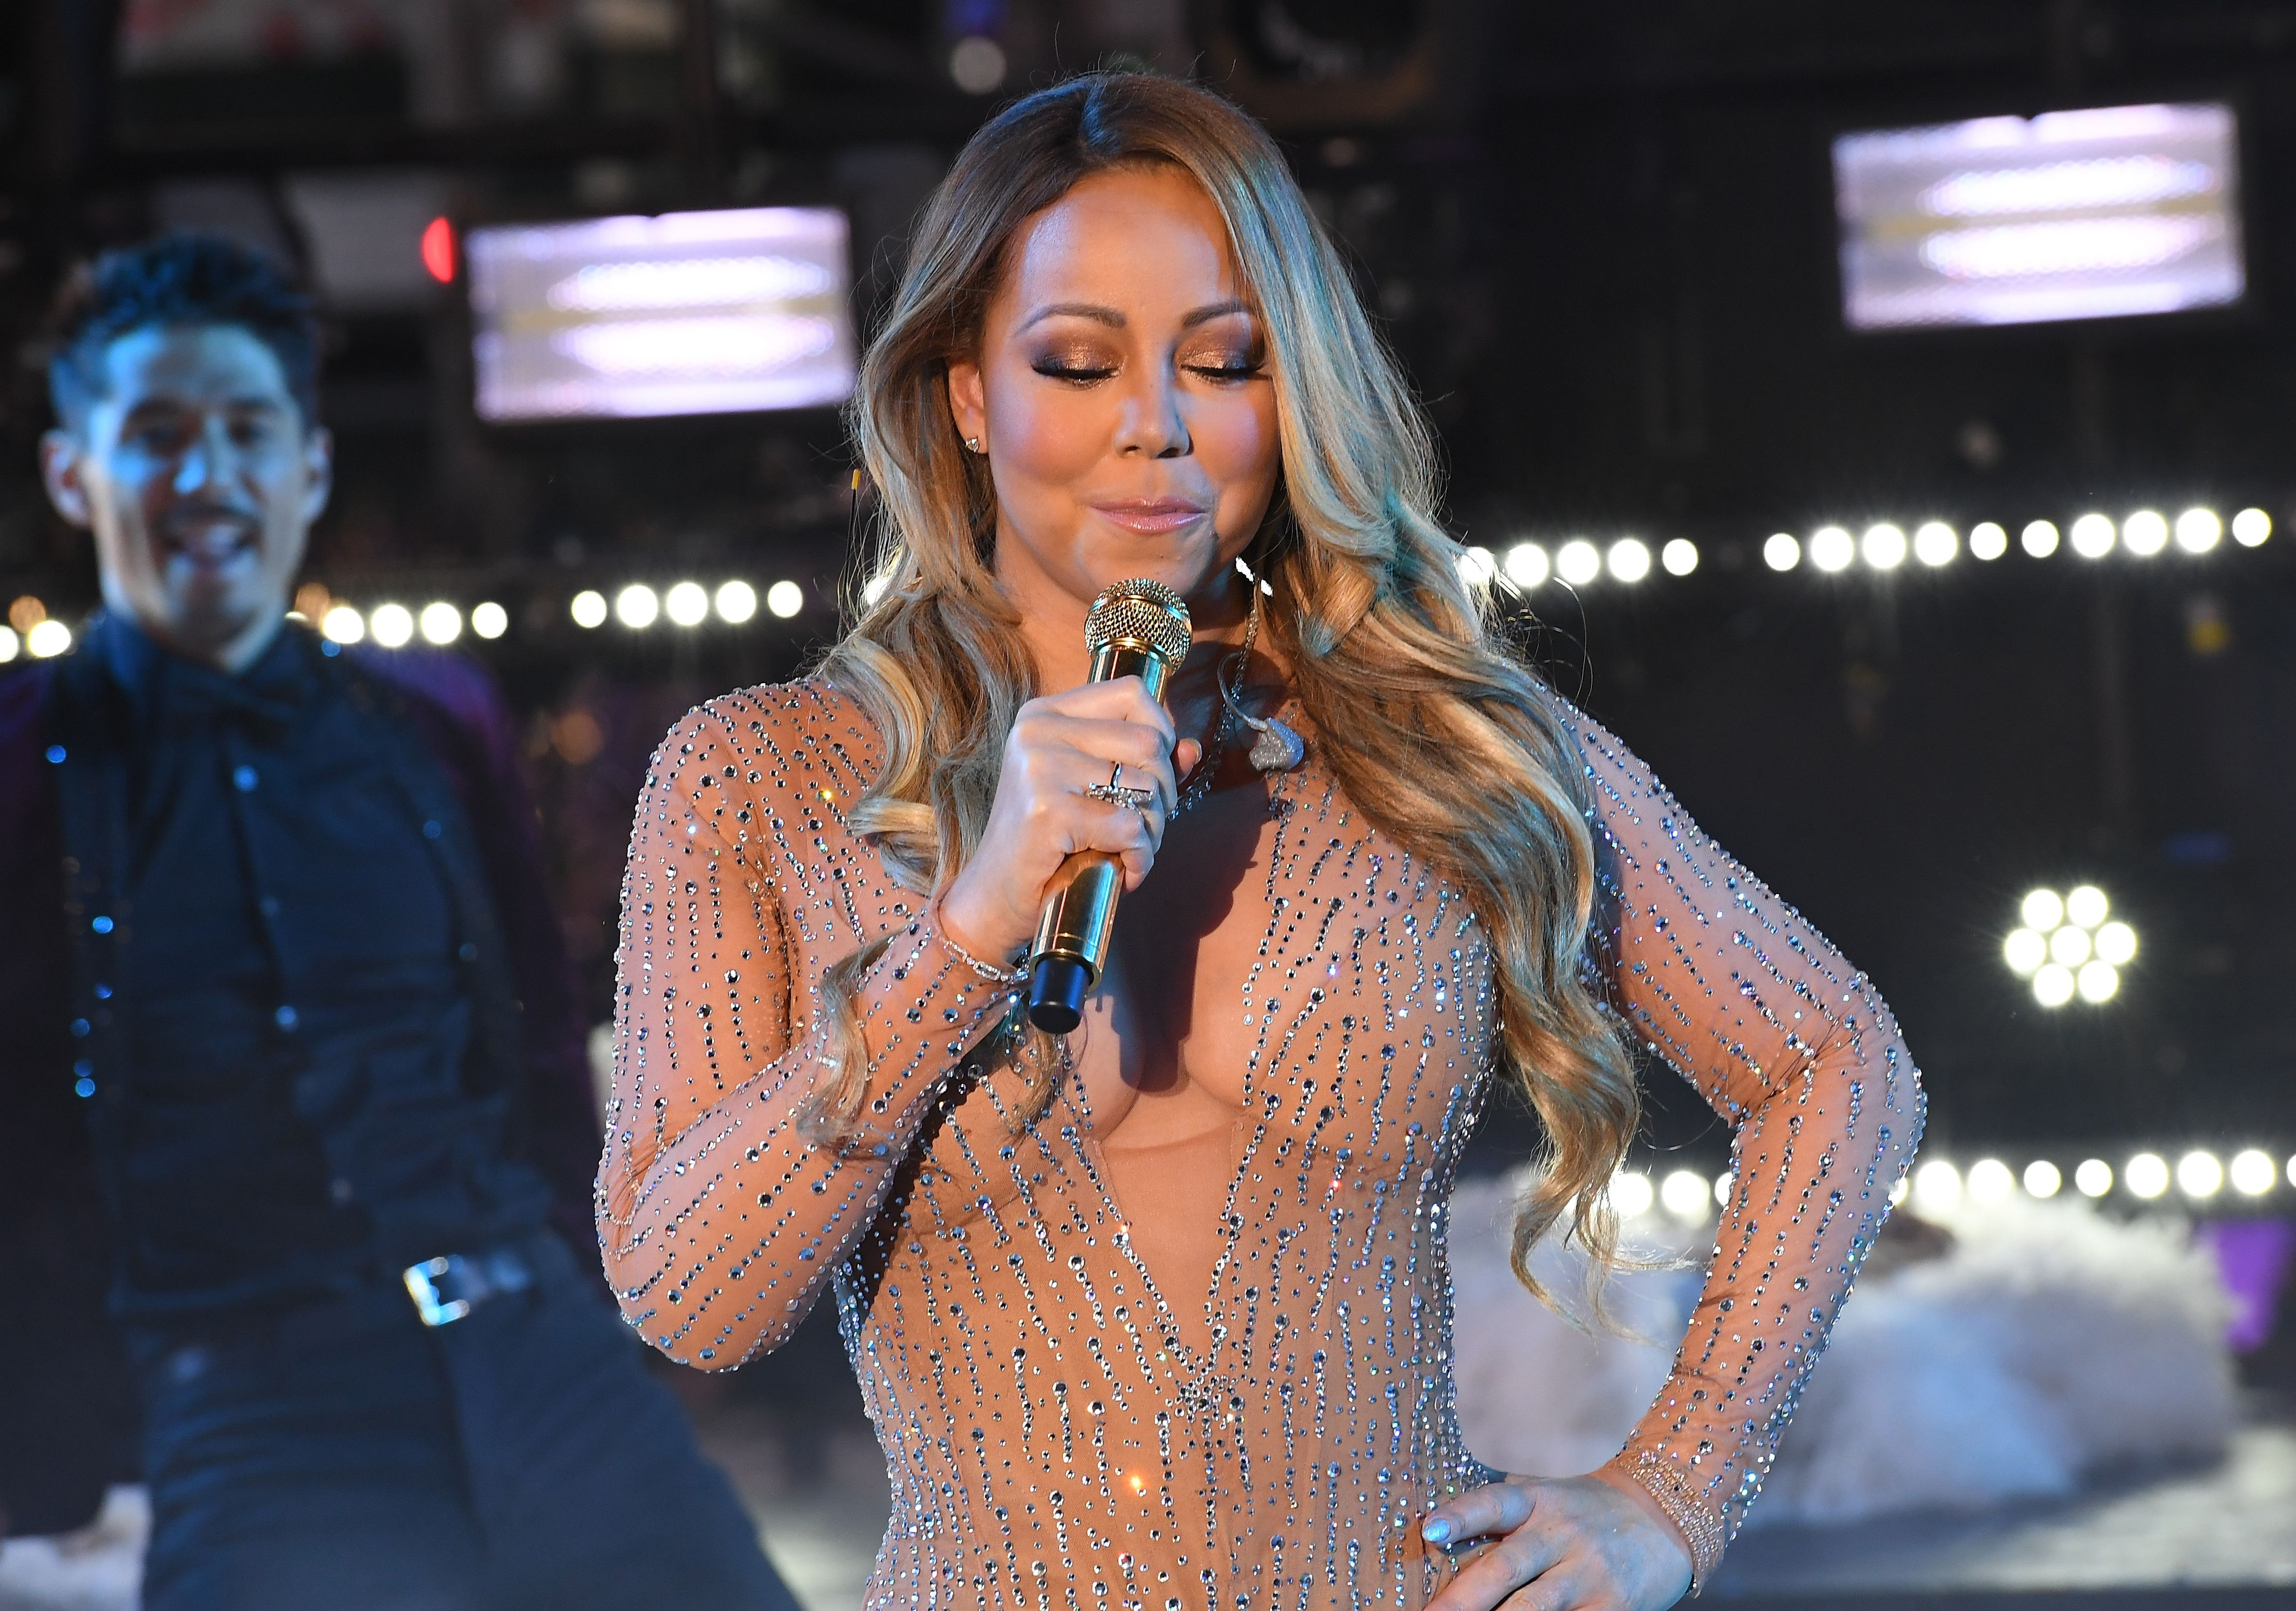 On New Year's Eve, Mariah Carey was at a loss for words.